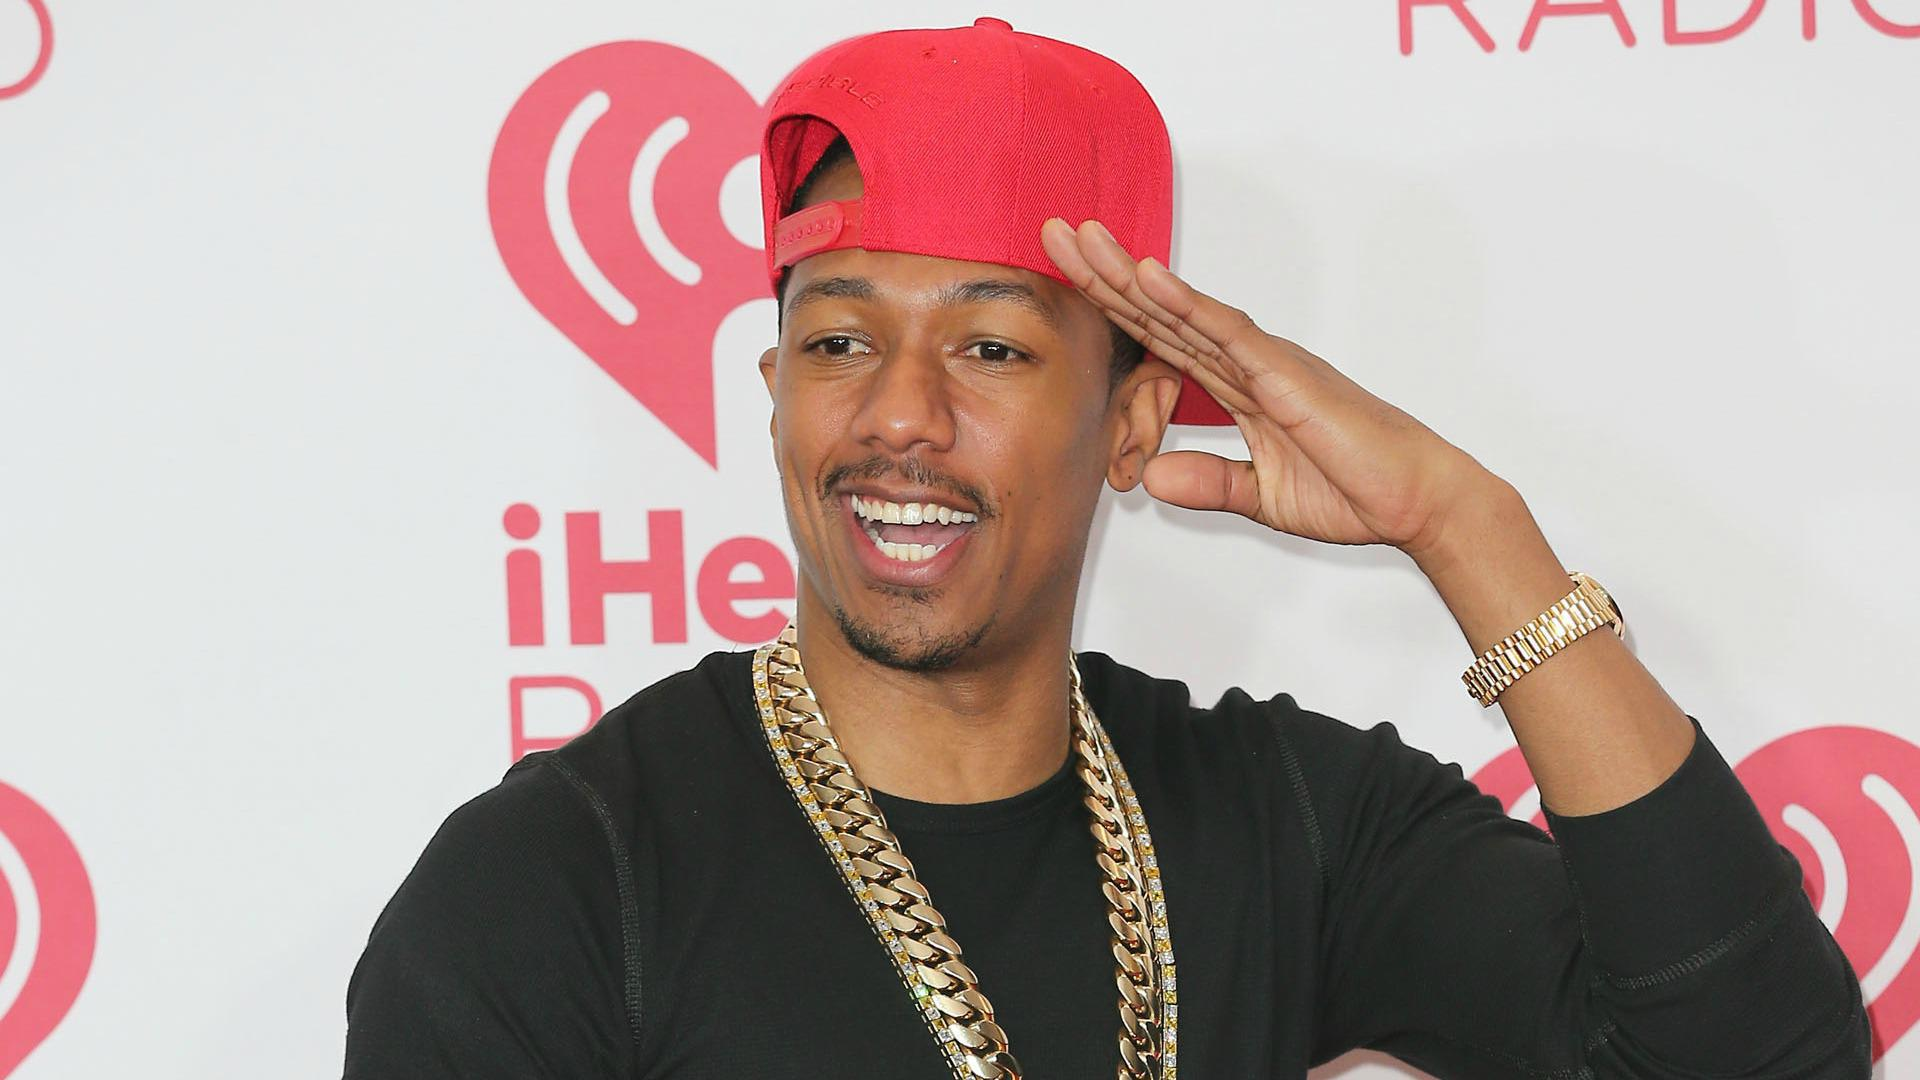 Nick Cannon Hd Desktop